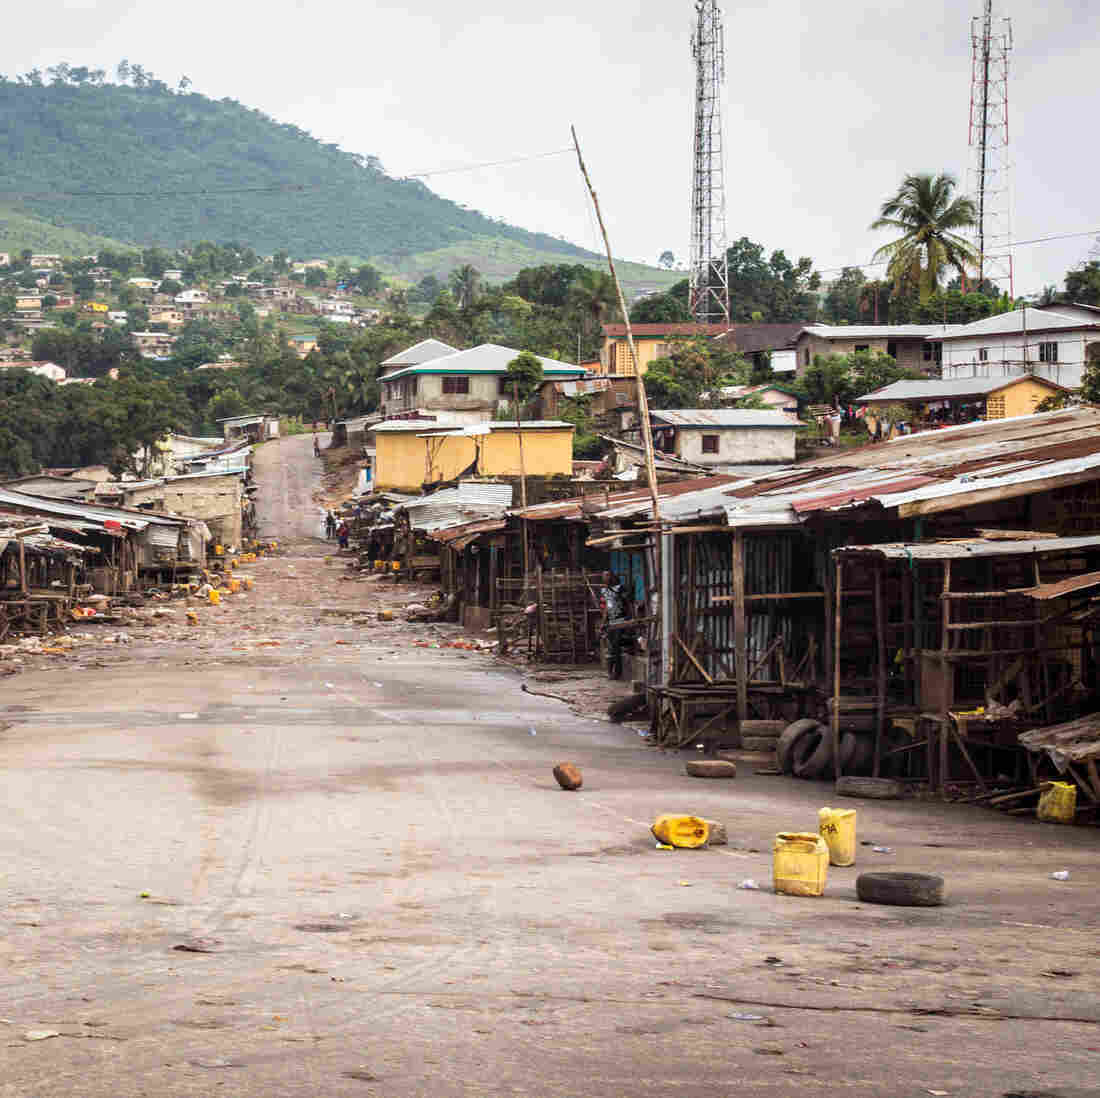 World Bank Says Ebola Could Inflict Enormous Economic Losses